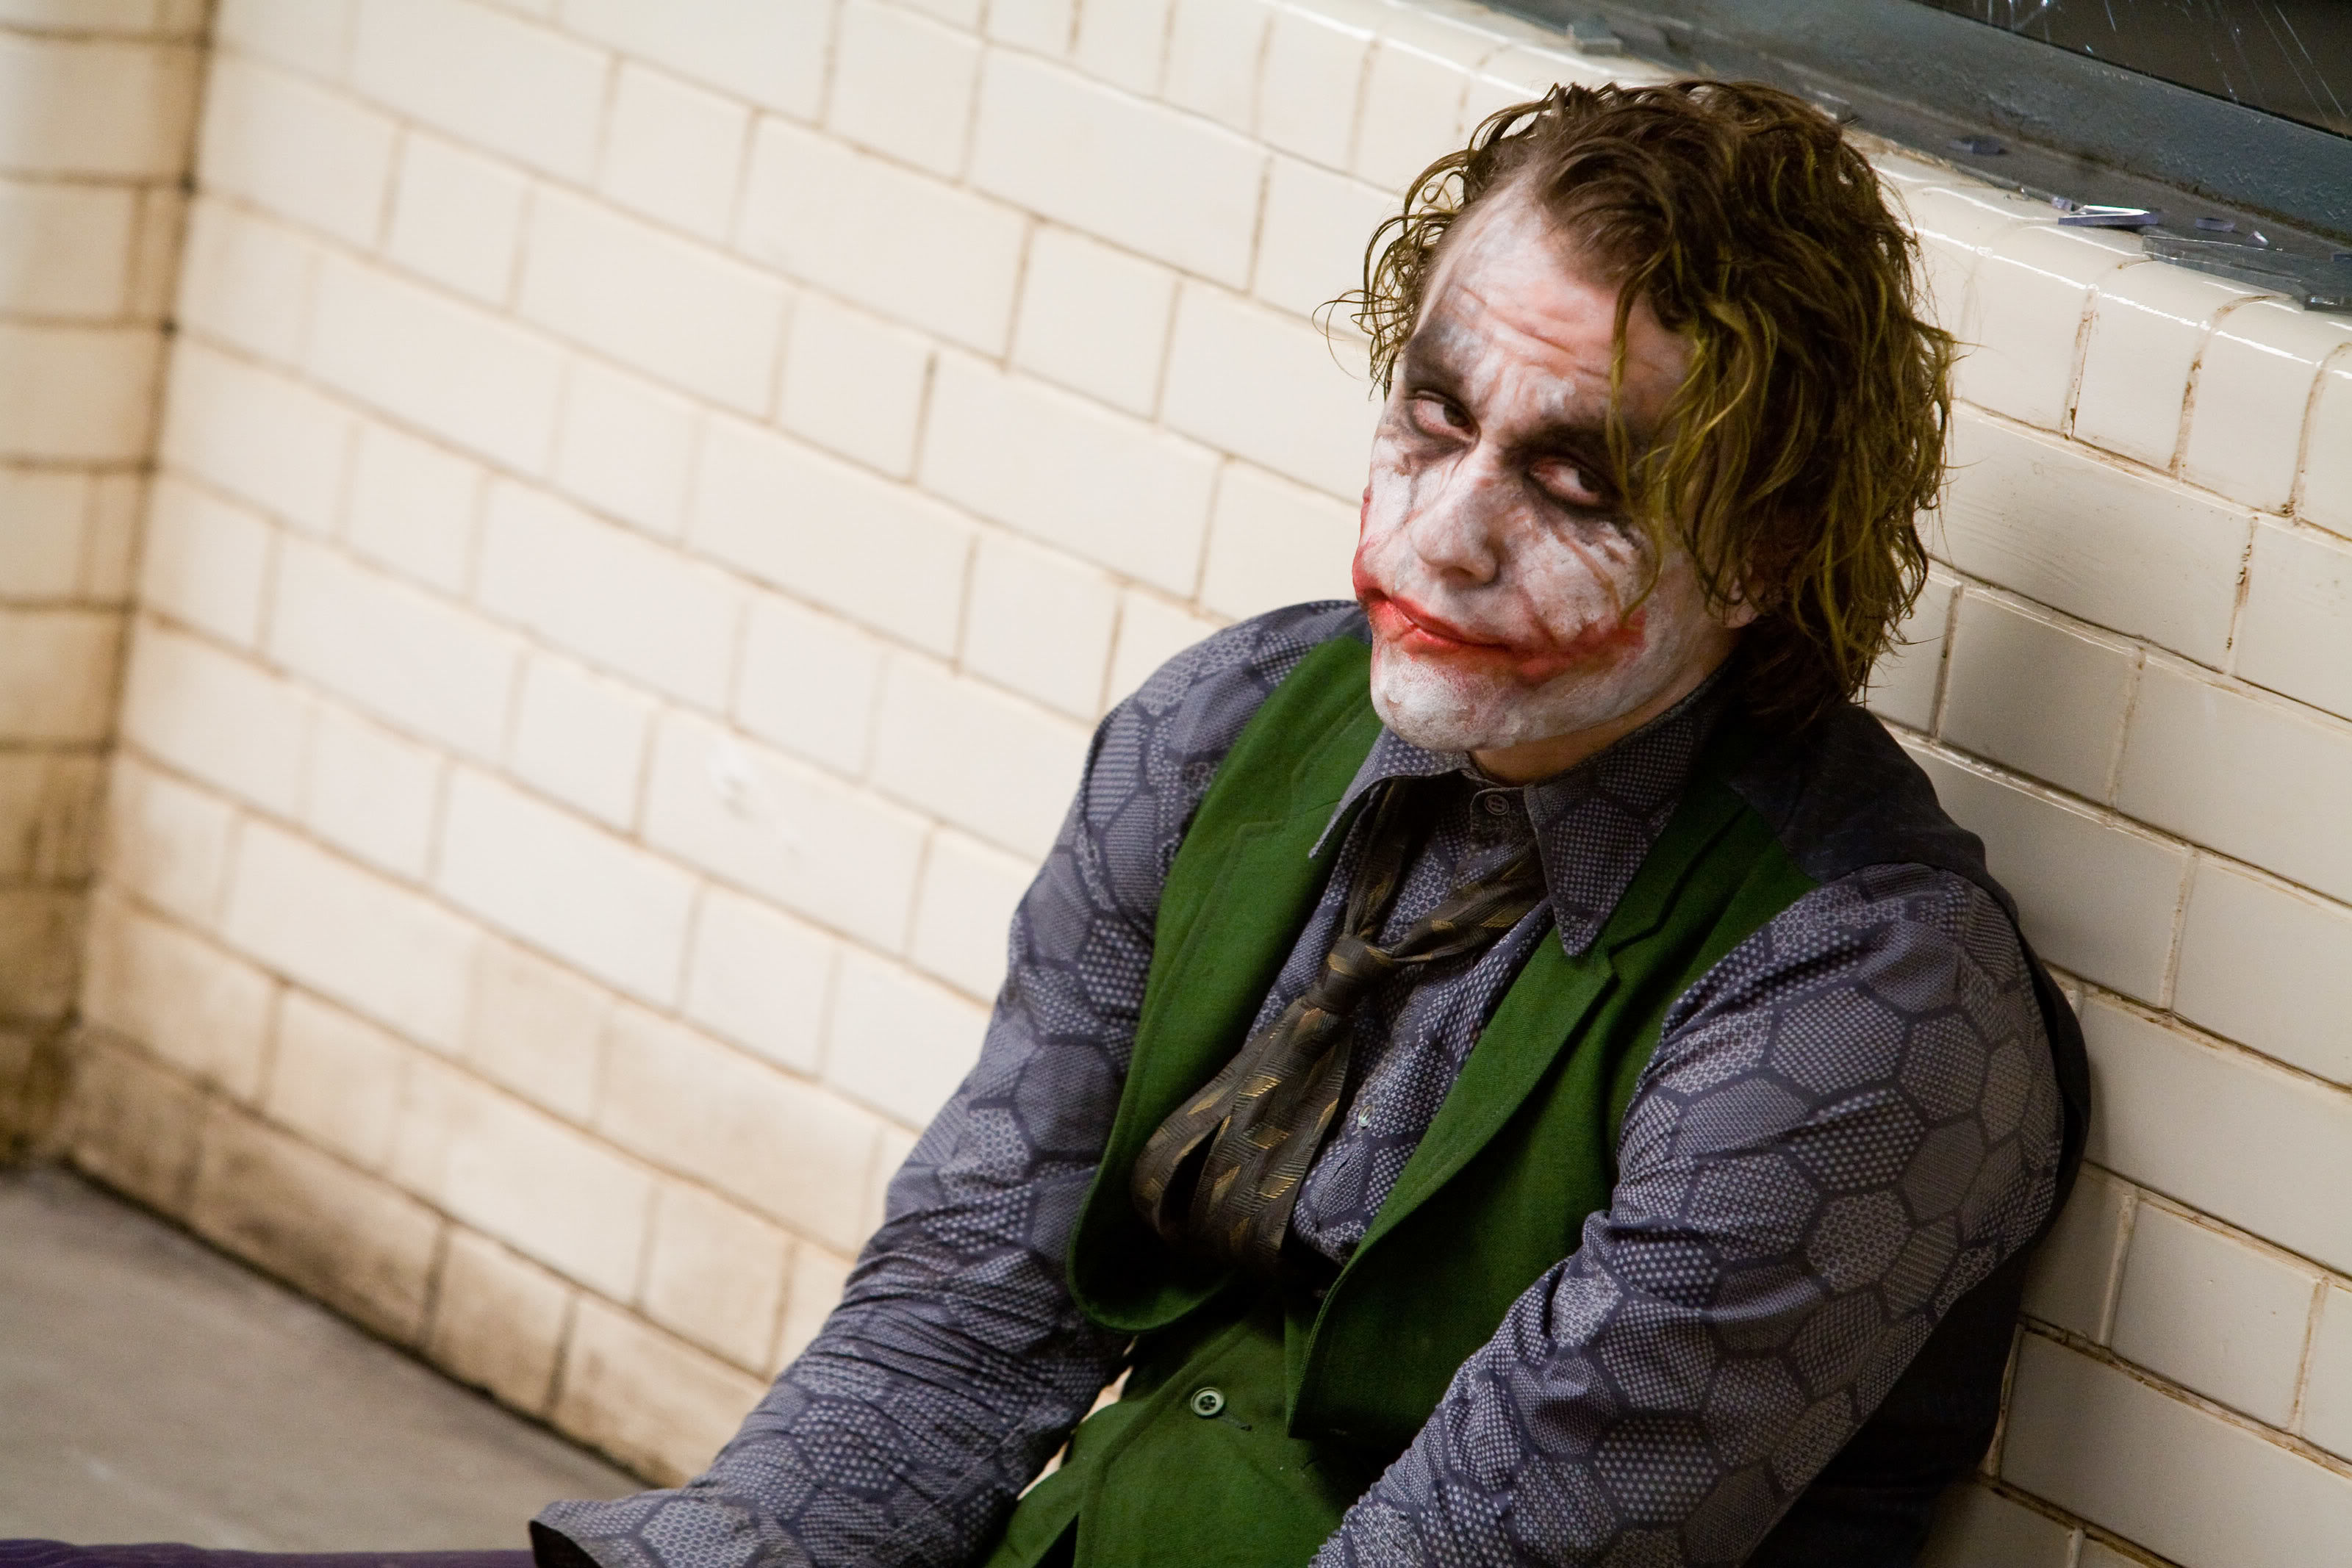 professional application letter proofreading website online honors the joker archives journo and the joker diamond geo engineering services comic theory is the joker